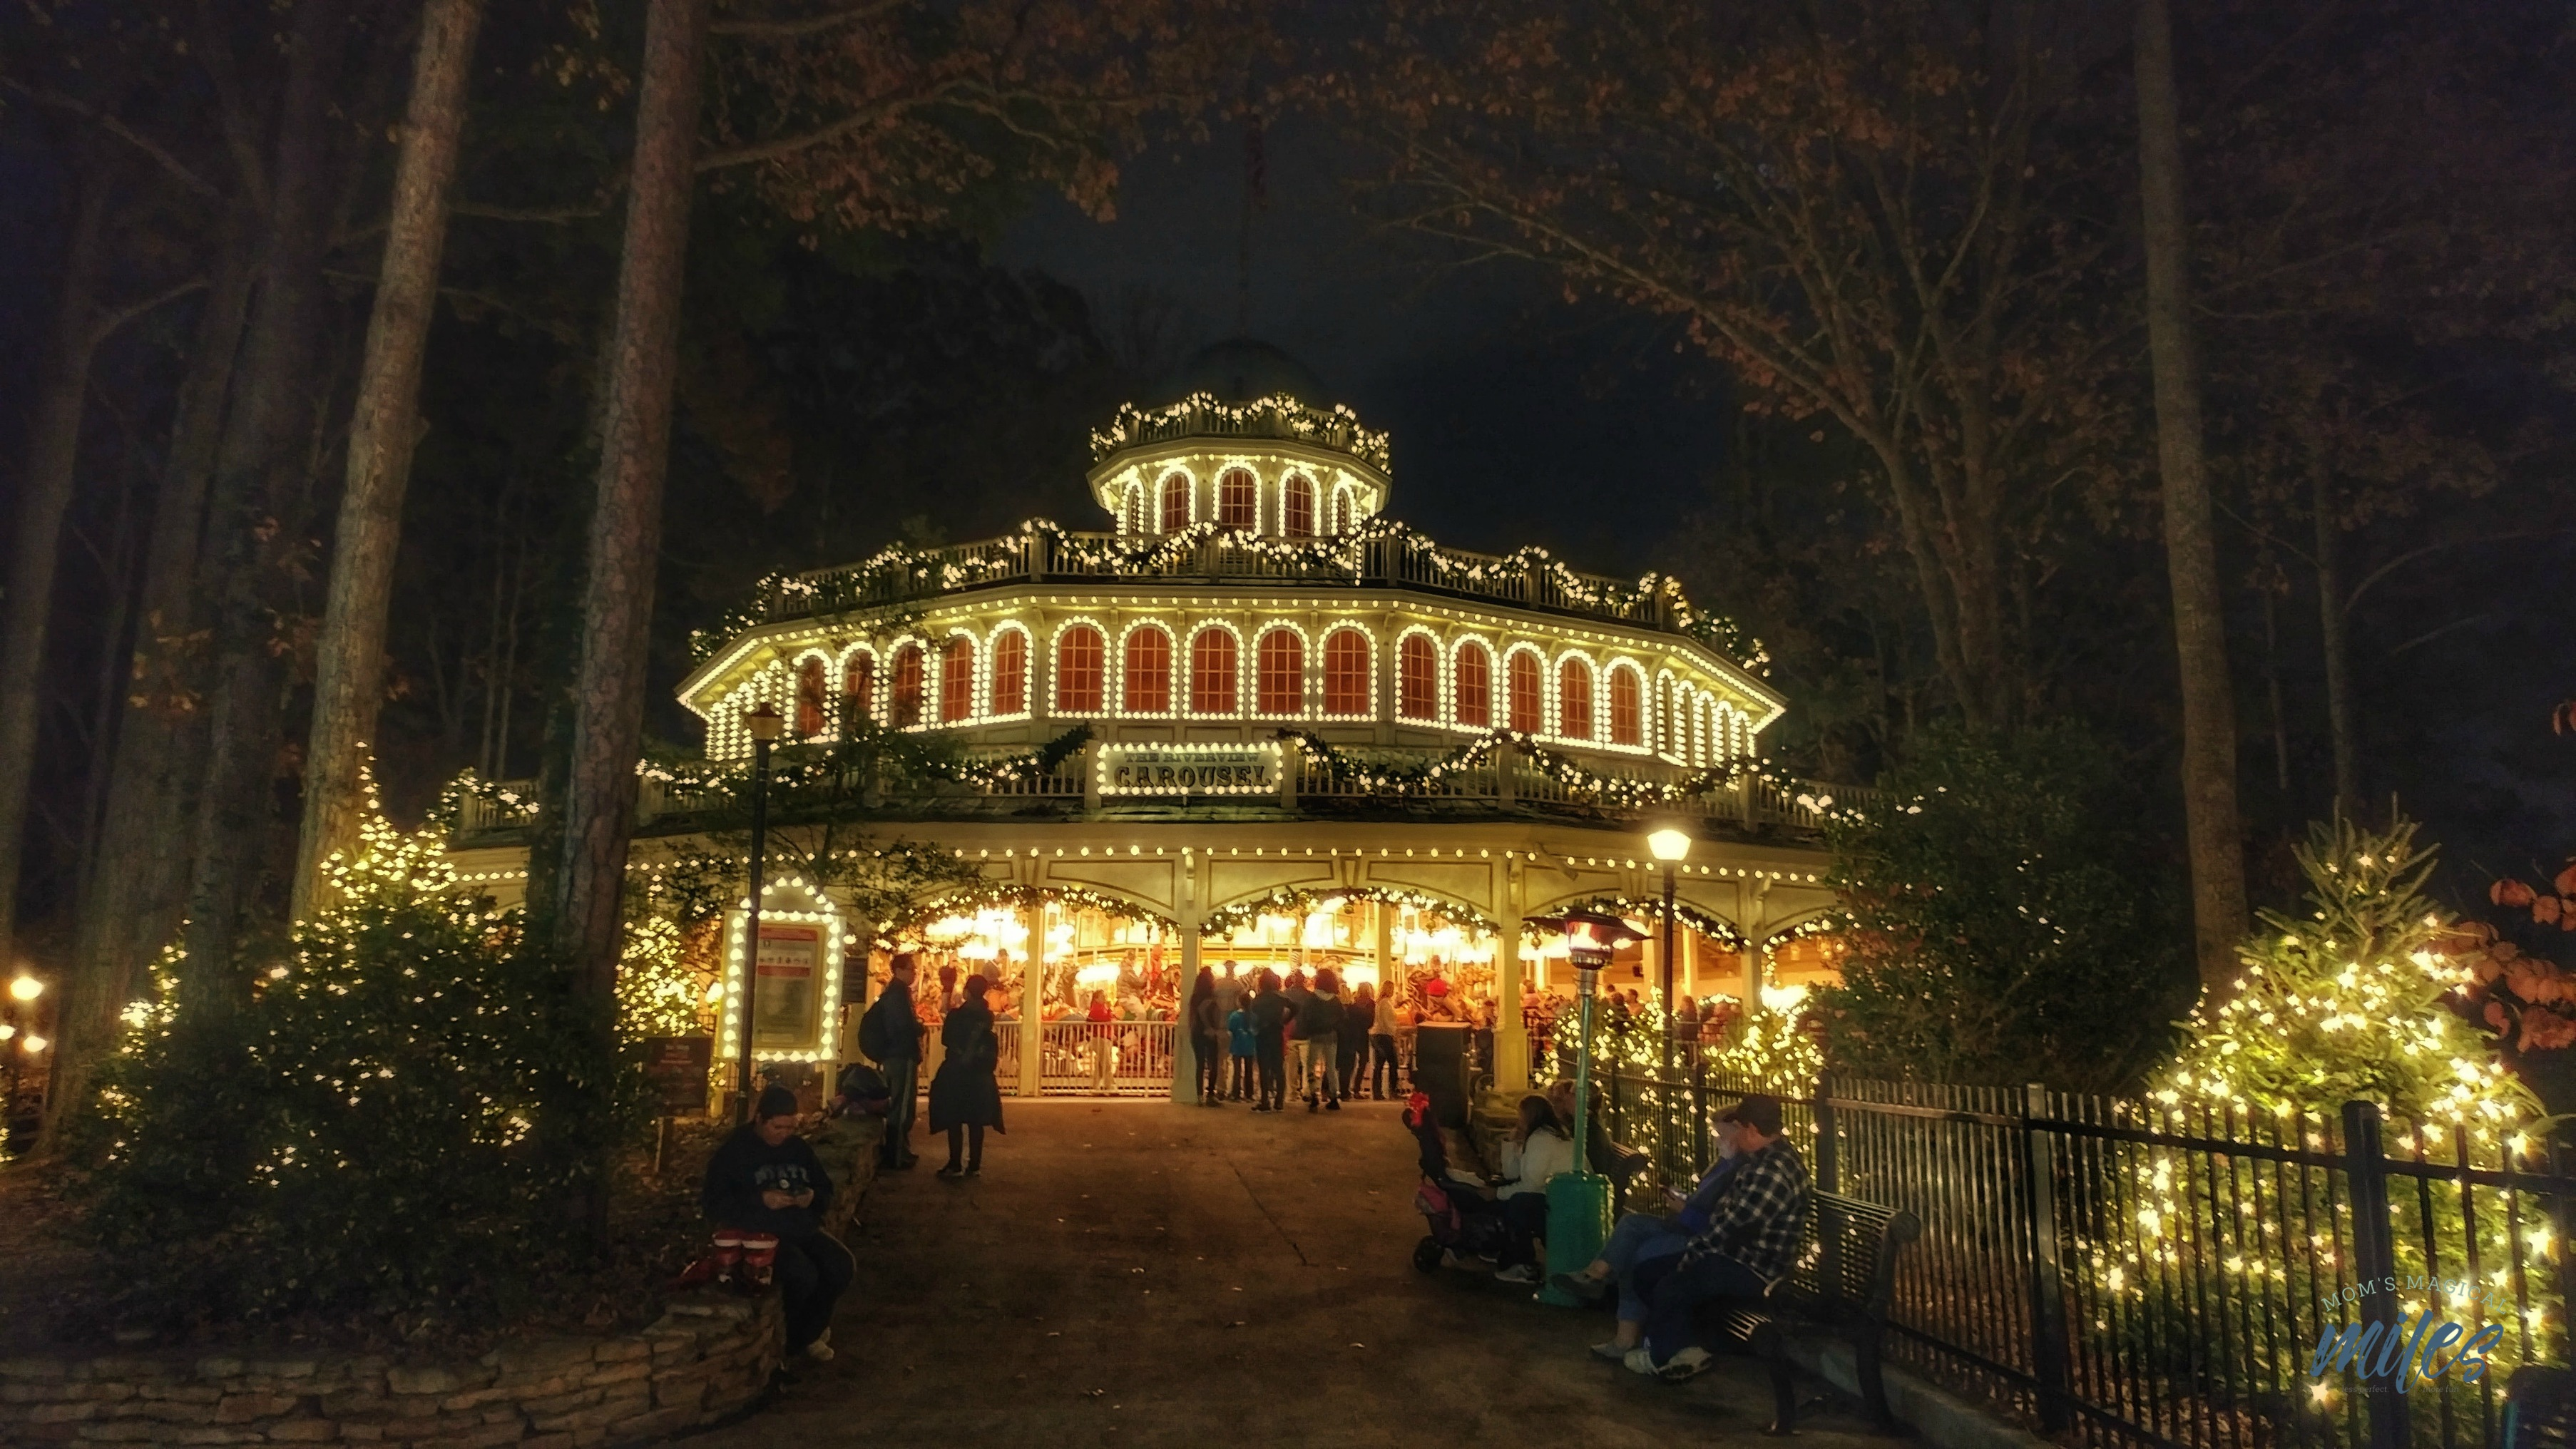 The Riverside Carousel is a must see during Six Flags Holiday in the Park! Six Flags Over Georgia